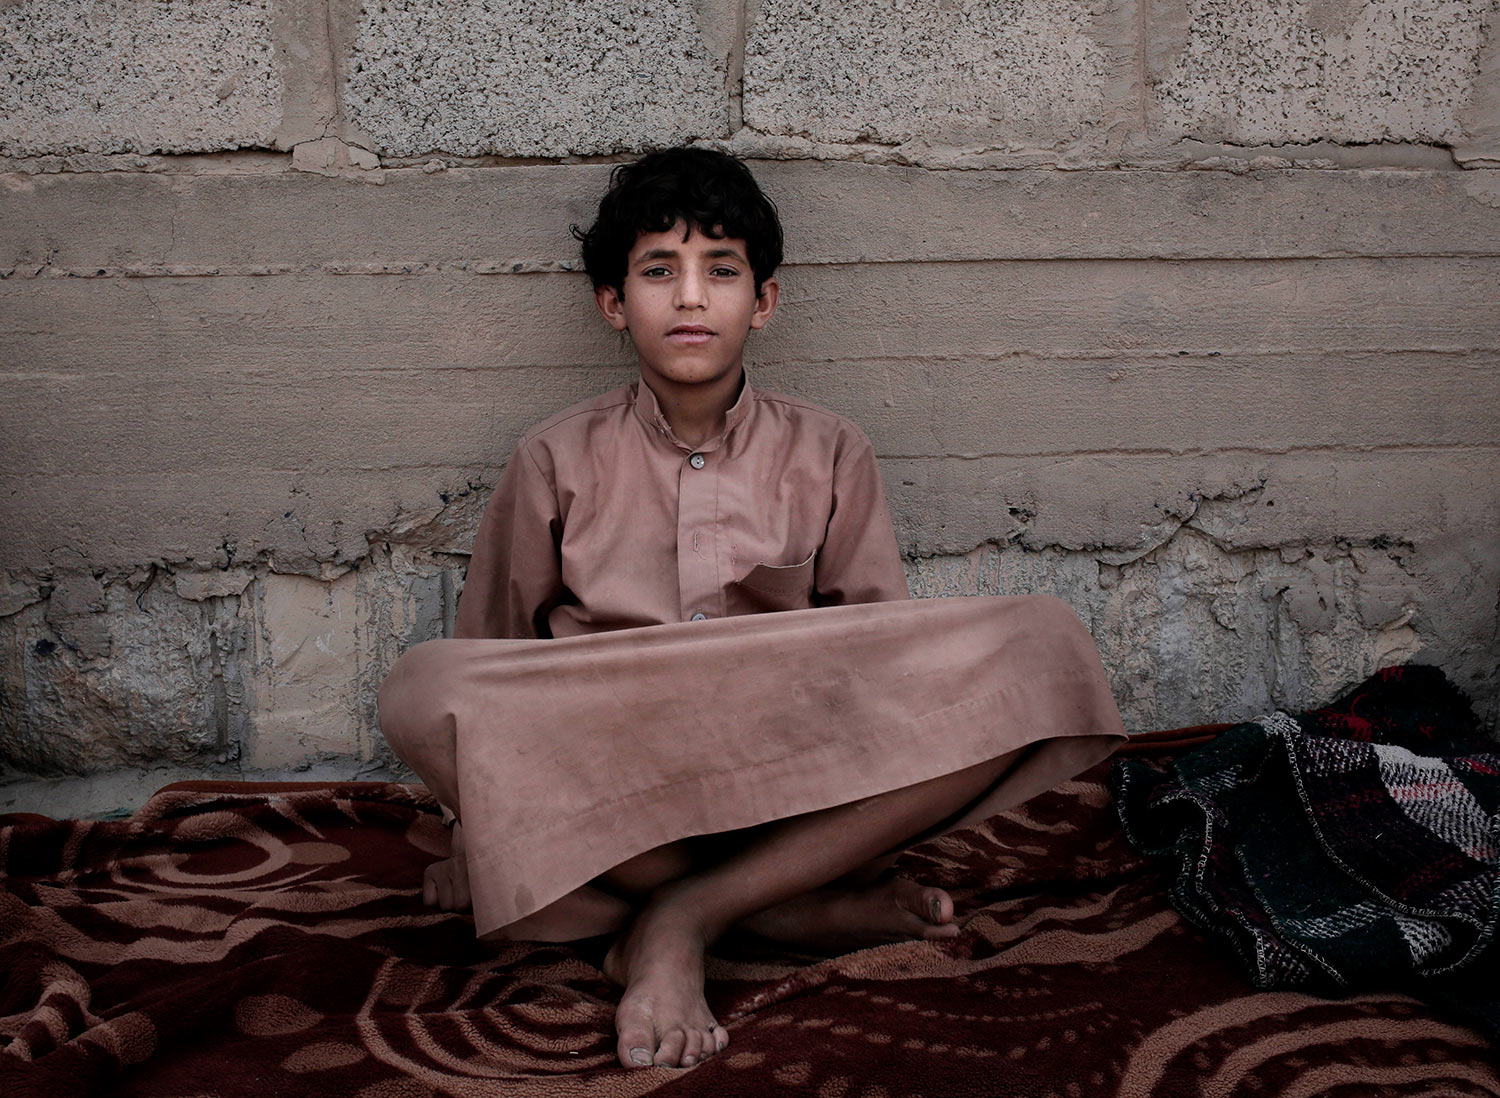 In this July 27, 2018 photo, 14 year-old Morsal Al Amery, poses for a photograph at a camp for displaced persons where he took shelter, in Marib, Yemen, (AP Photo/Nariman El-Mofty)